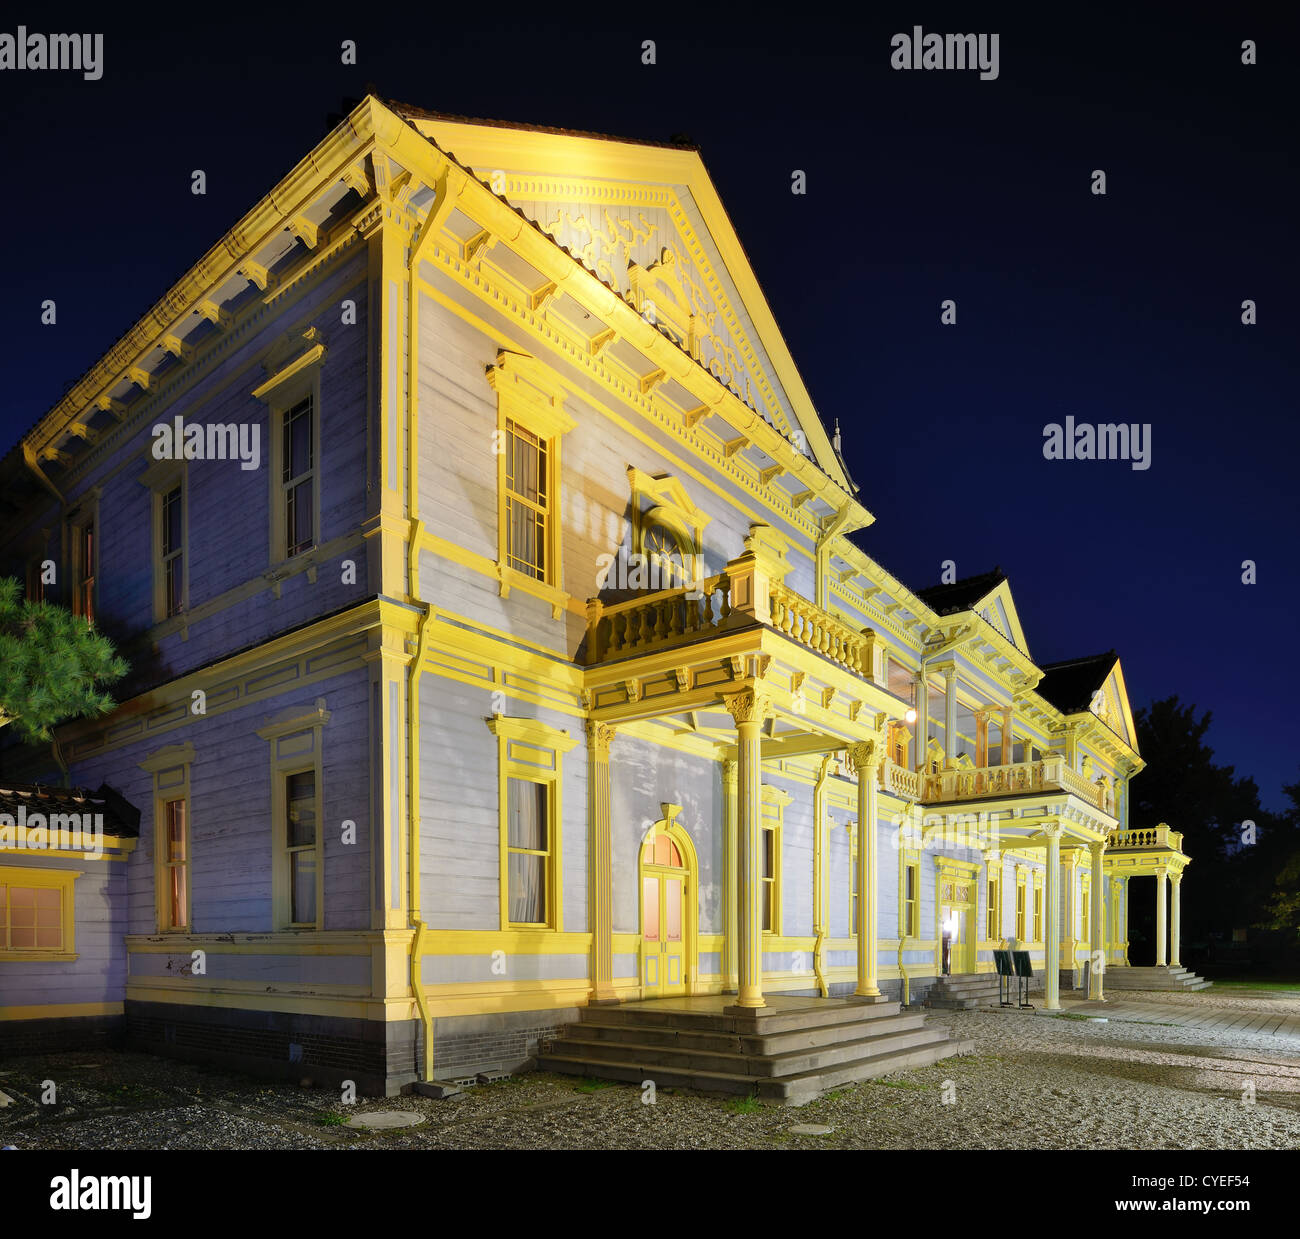 Old Public Hall of Hakodate, Hokkaido, Japan. - Stock Image